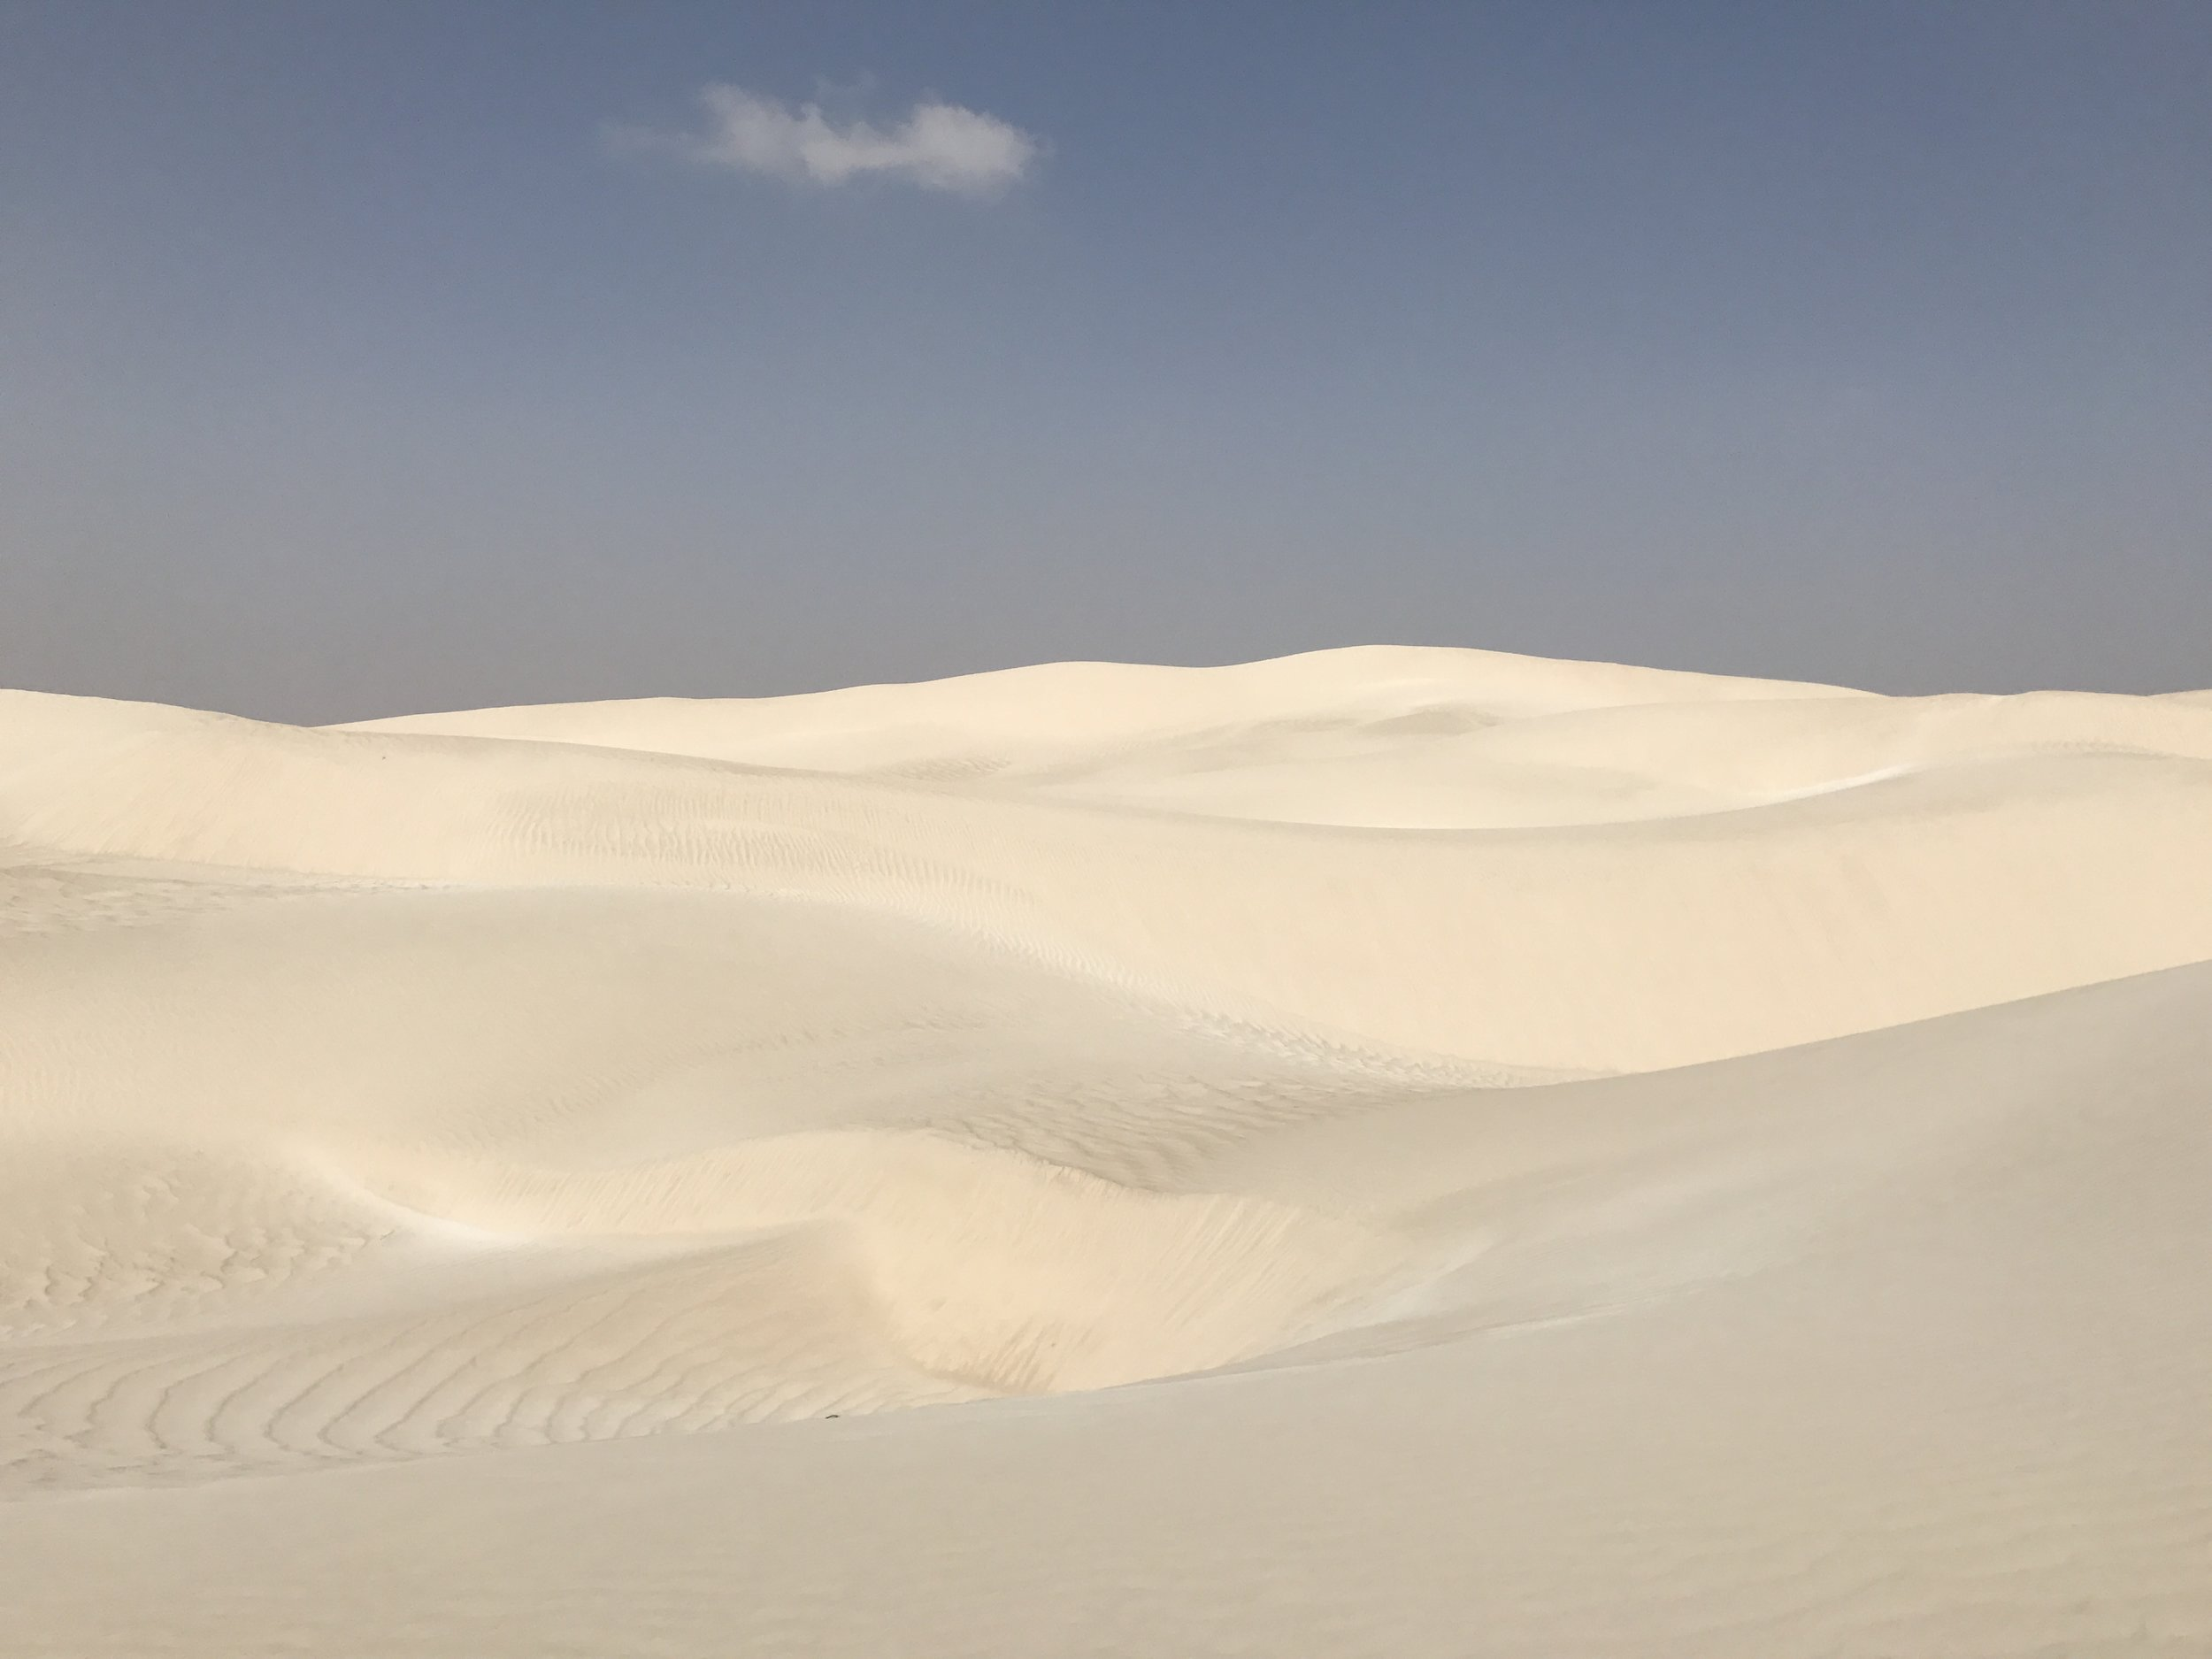 The Sugar Dunes of Oman. As close to a polar landscape as you can get in the desert!